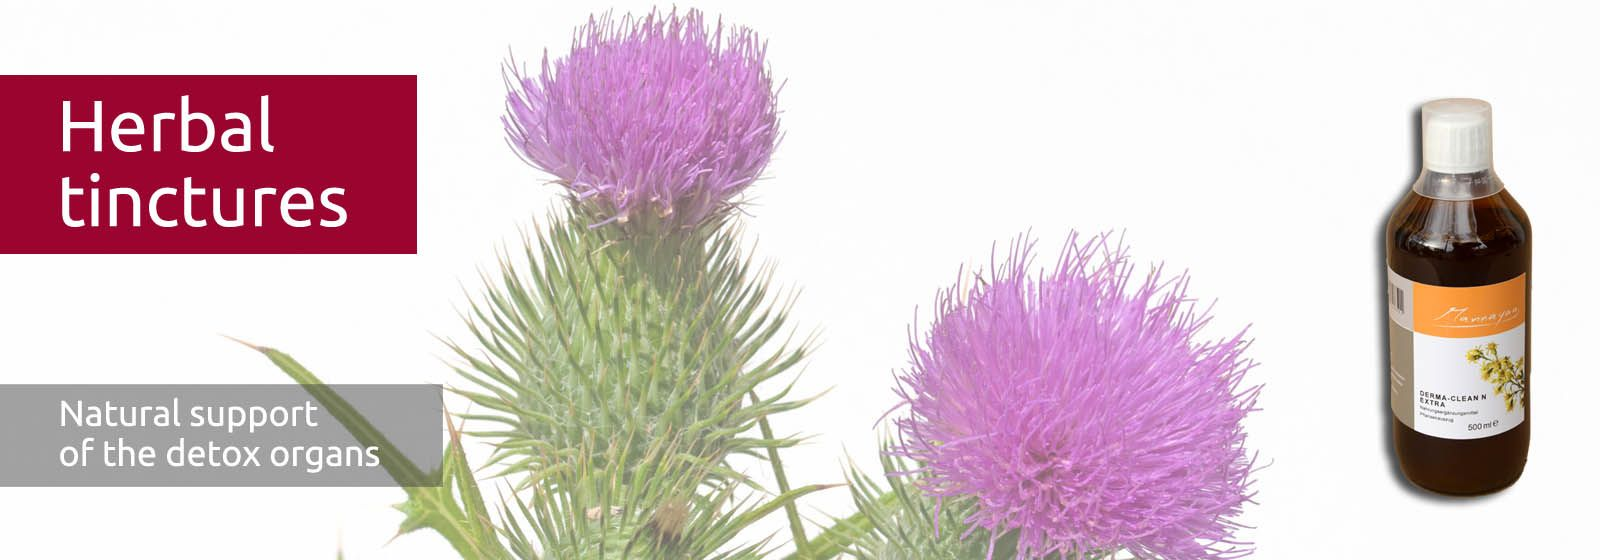 The artichoke with purple blossom is a classic remedy for the liver